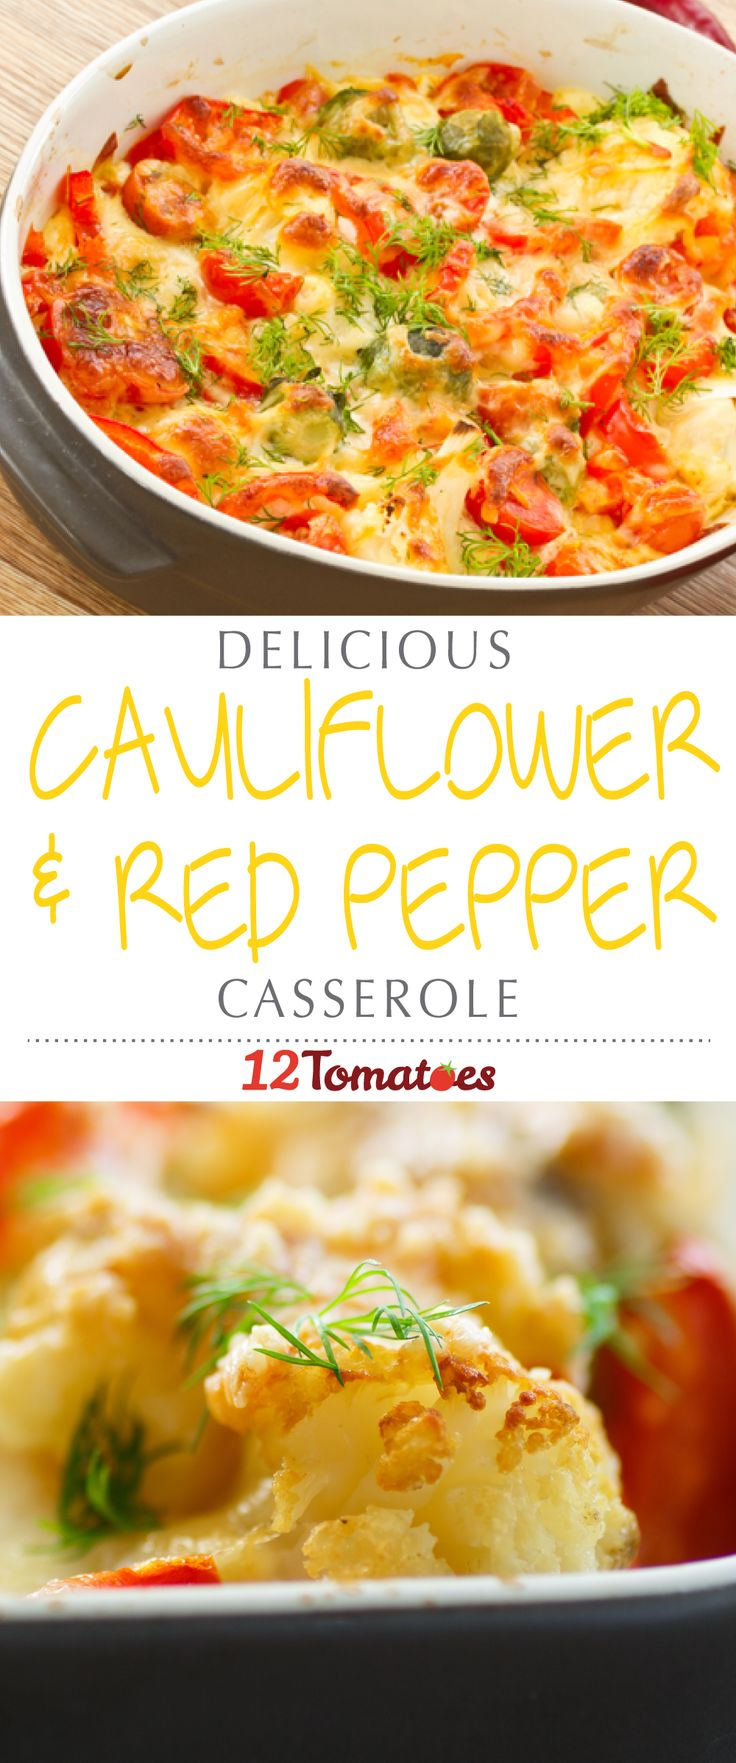 Cauliflower & Red Pepper Casserole | This is probably because a lot of times it's lumped in with a mix of other vegetables and doesn't really get a chance to wow people with it's own unique flavor.